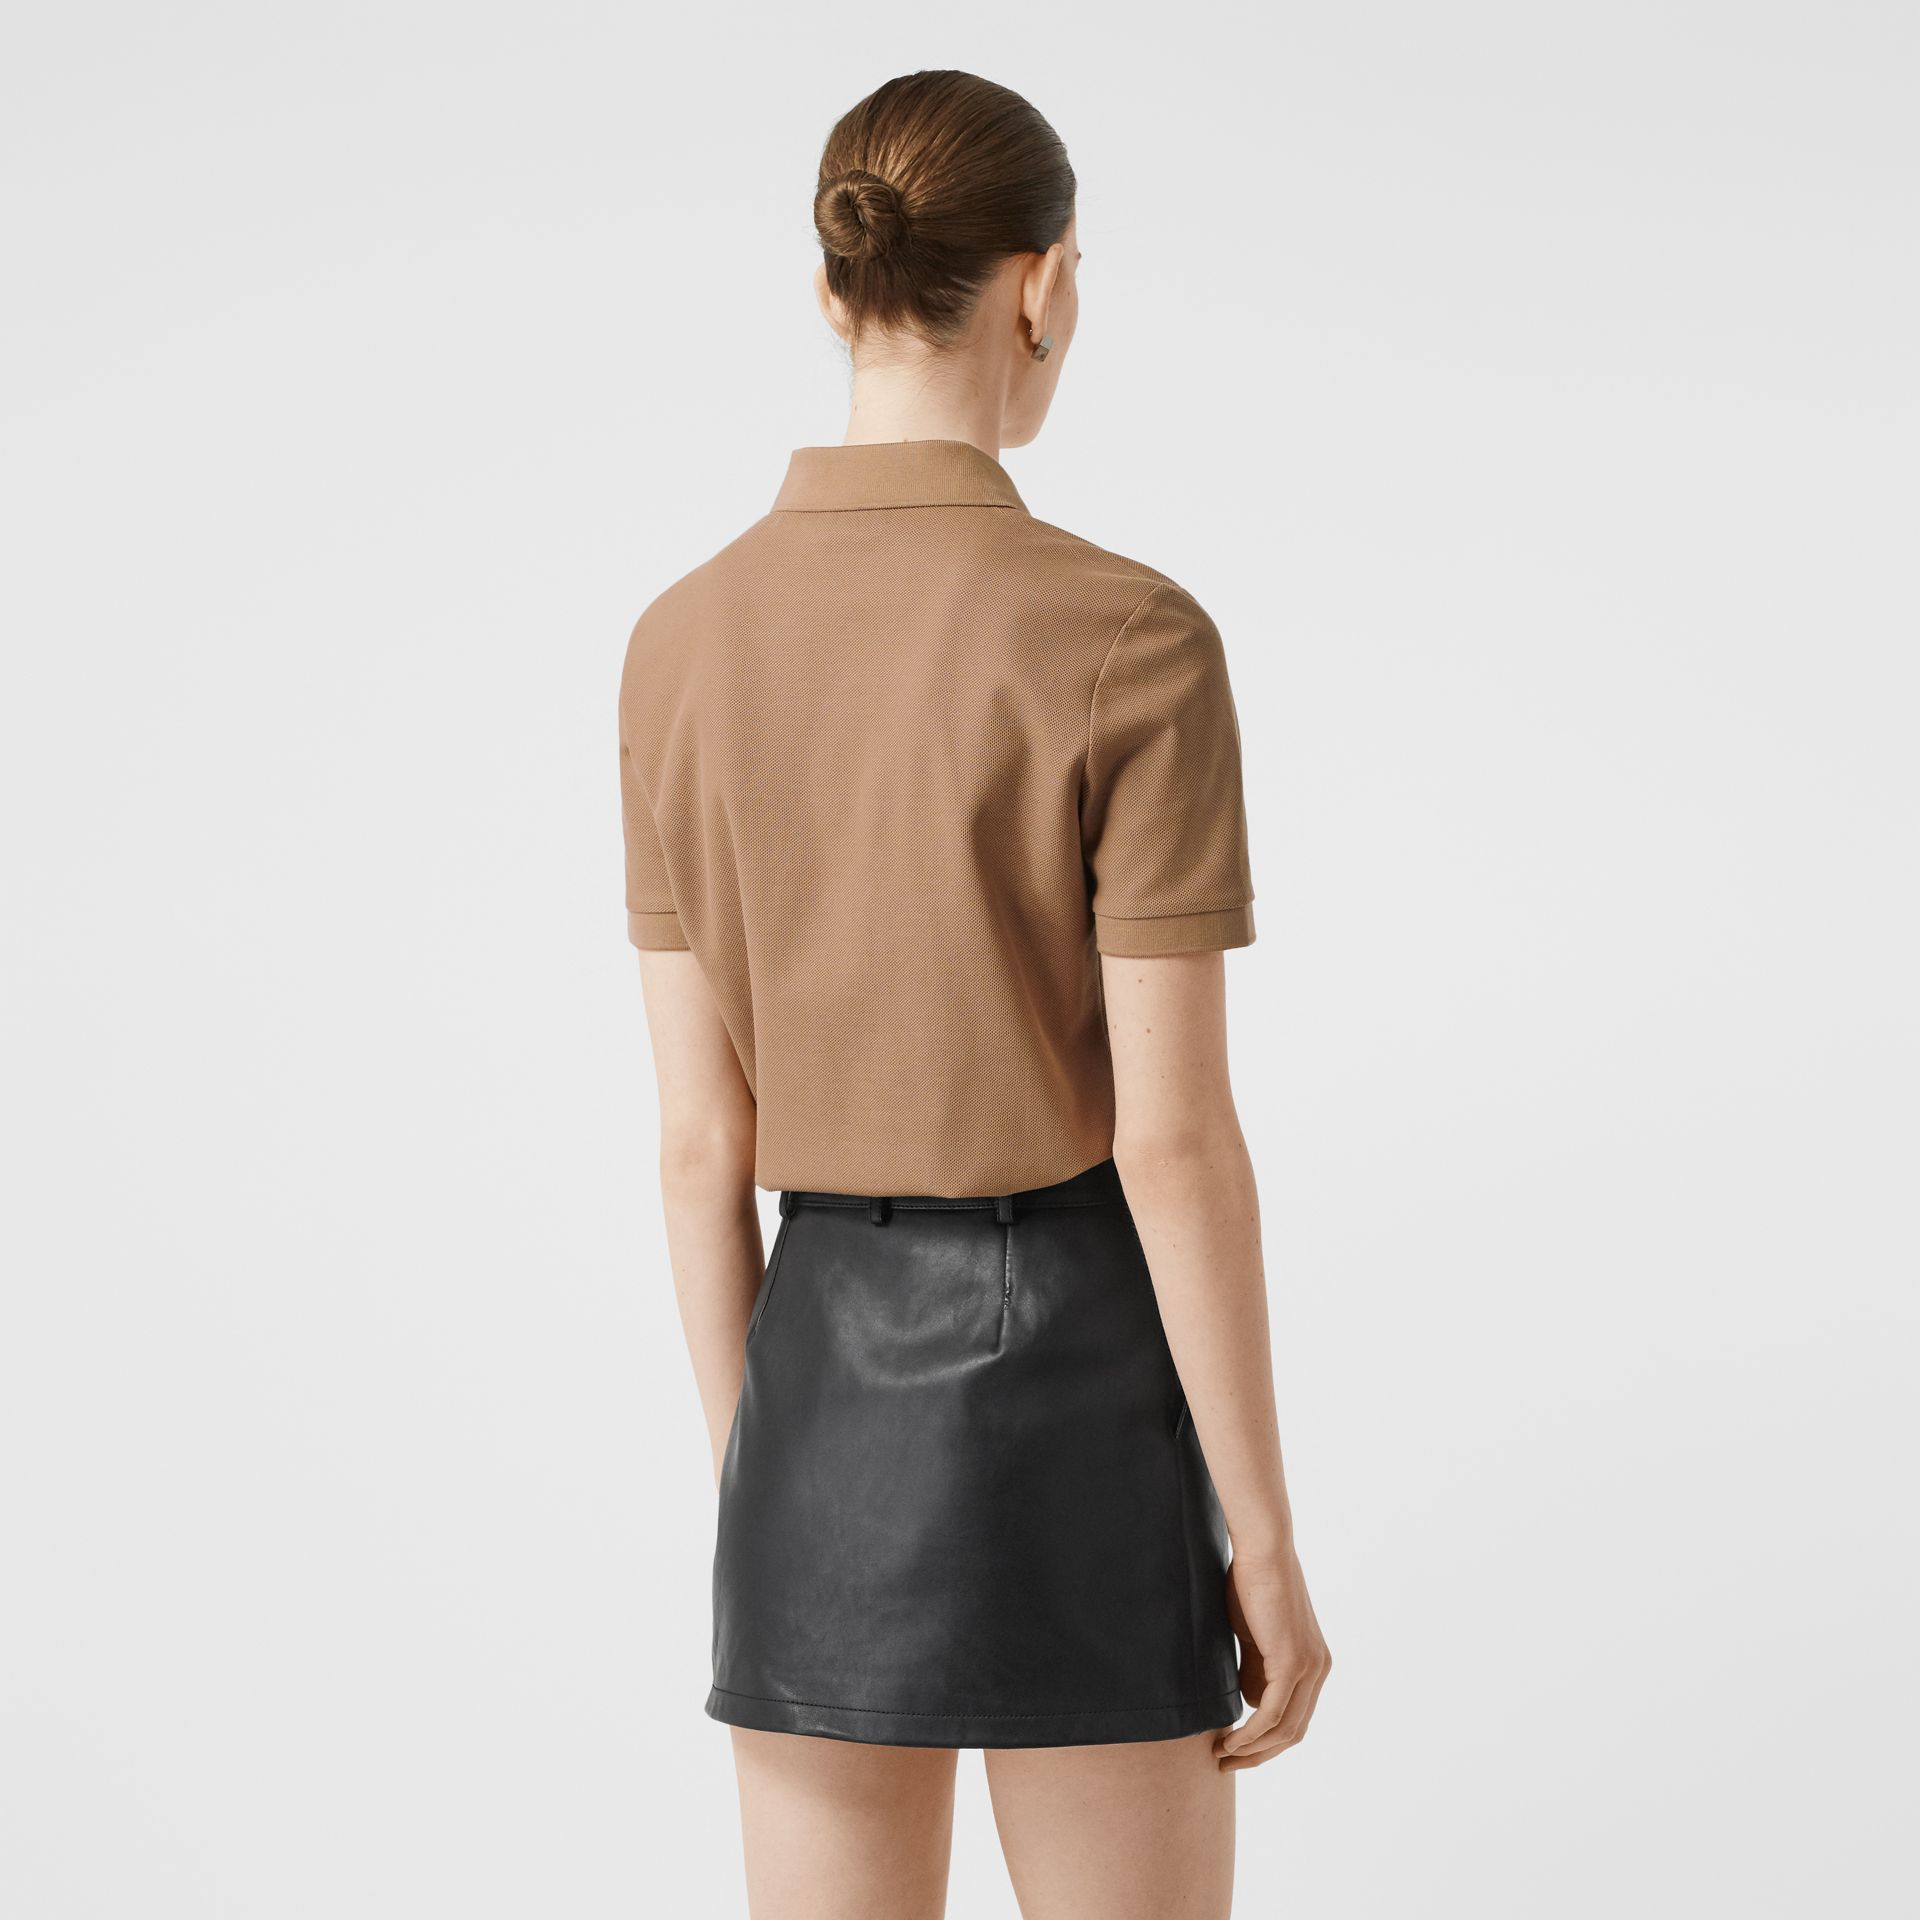 Monogram Motif Cotton Piqué Polo Shirt in Camel - Women | Burberry - gallery image 2